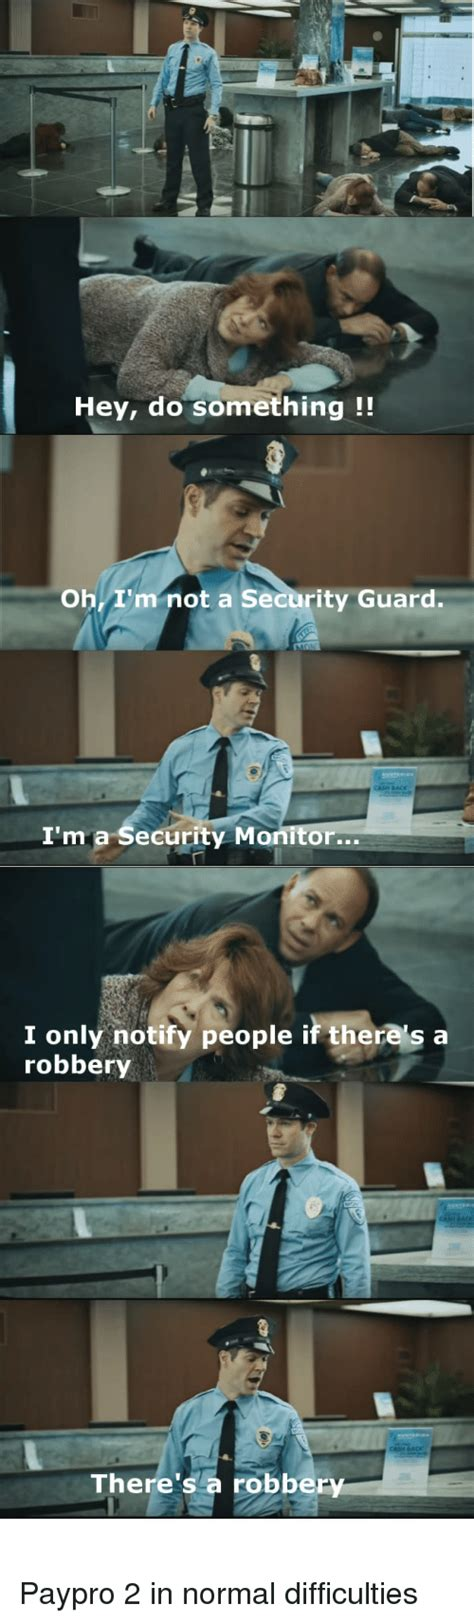 Hey Do Something Oh I'm Not a Security Guard I'm a